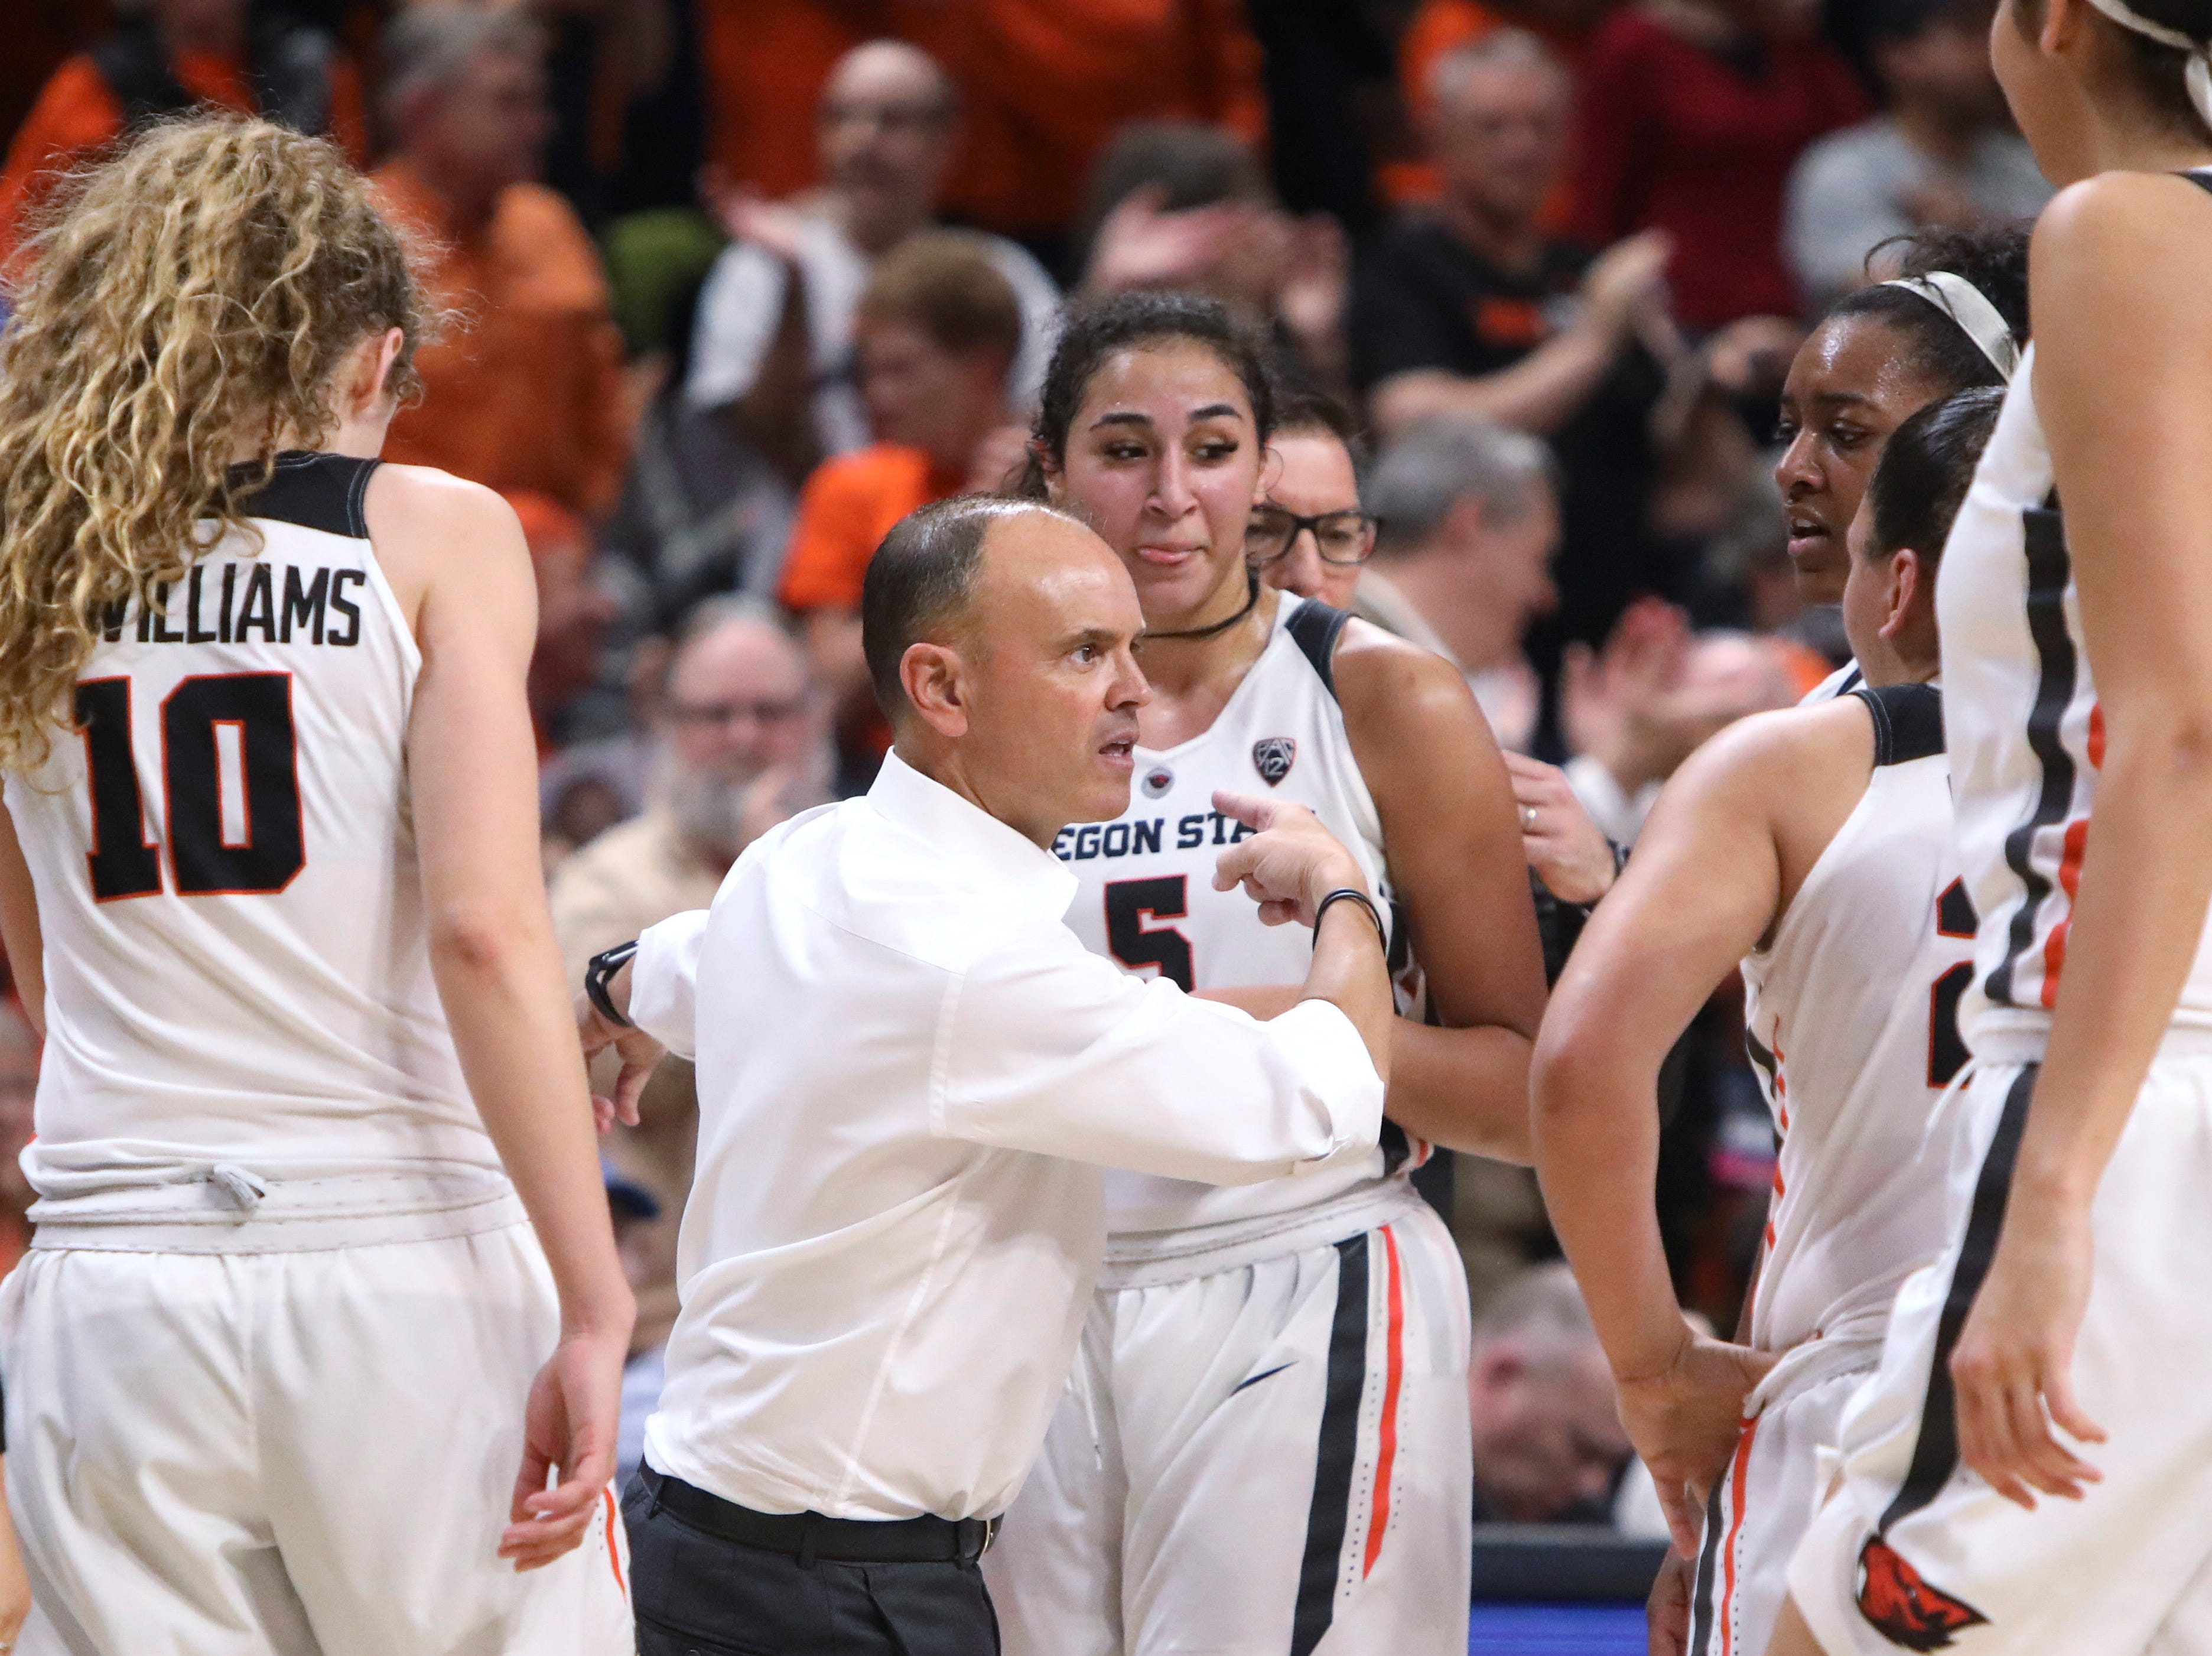 Oregon State coach Scott Rueck talks to players during a timeout in the second half against Gonzaga in a second-round game of the NCAA women's college basketball tournament in Corvallis, Ore., Monday, March 25, 2019. Oregon State won 76-70. (AP Photo/Amanda Loman)